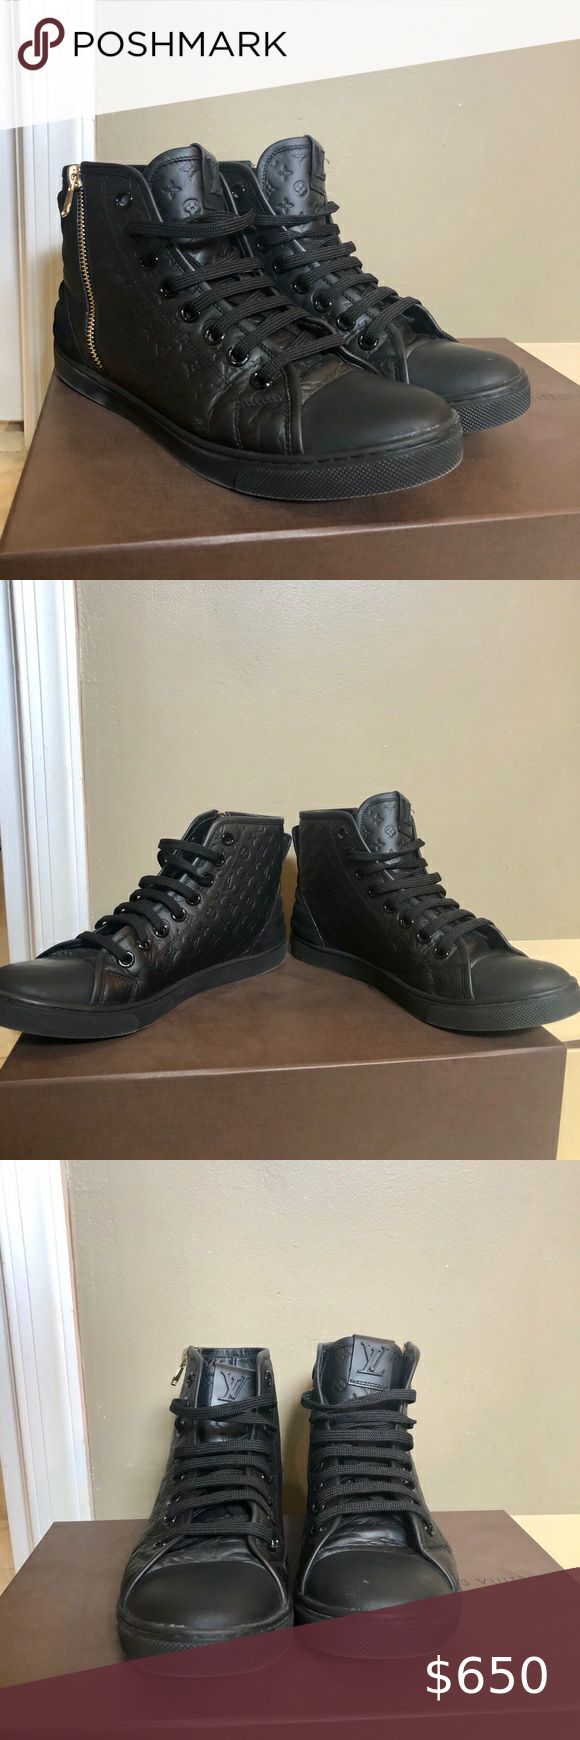 Authentic Louis Vuitton women's converse sneakers in 2020 ...